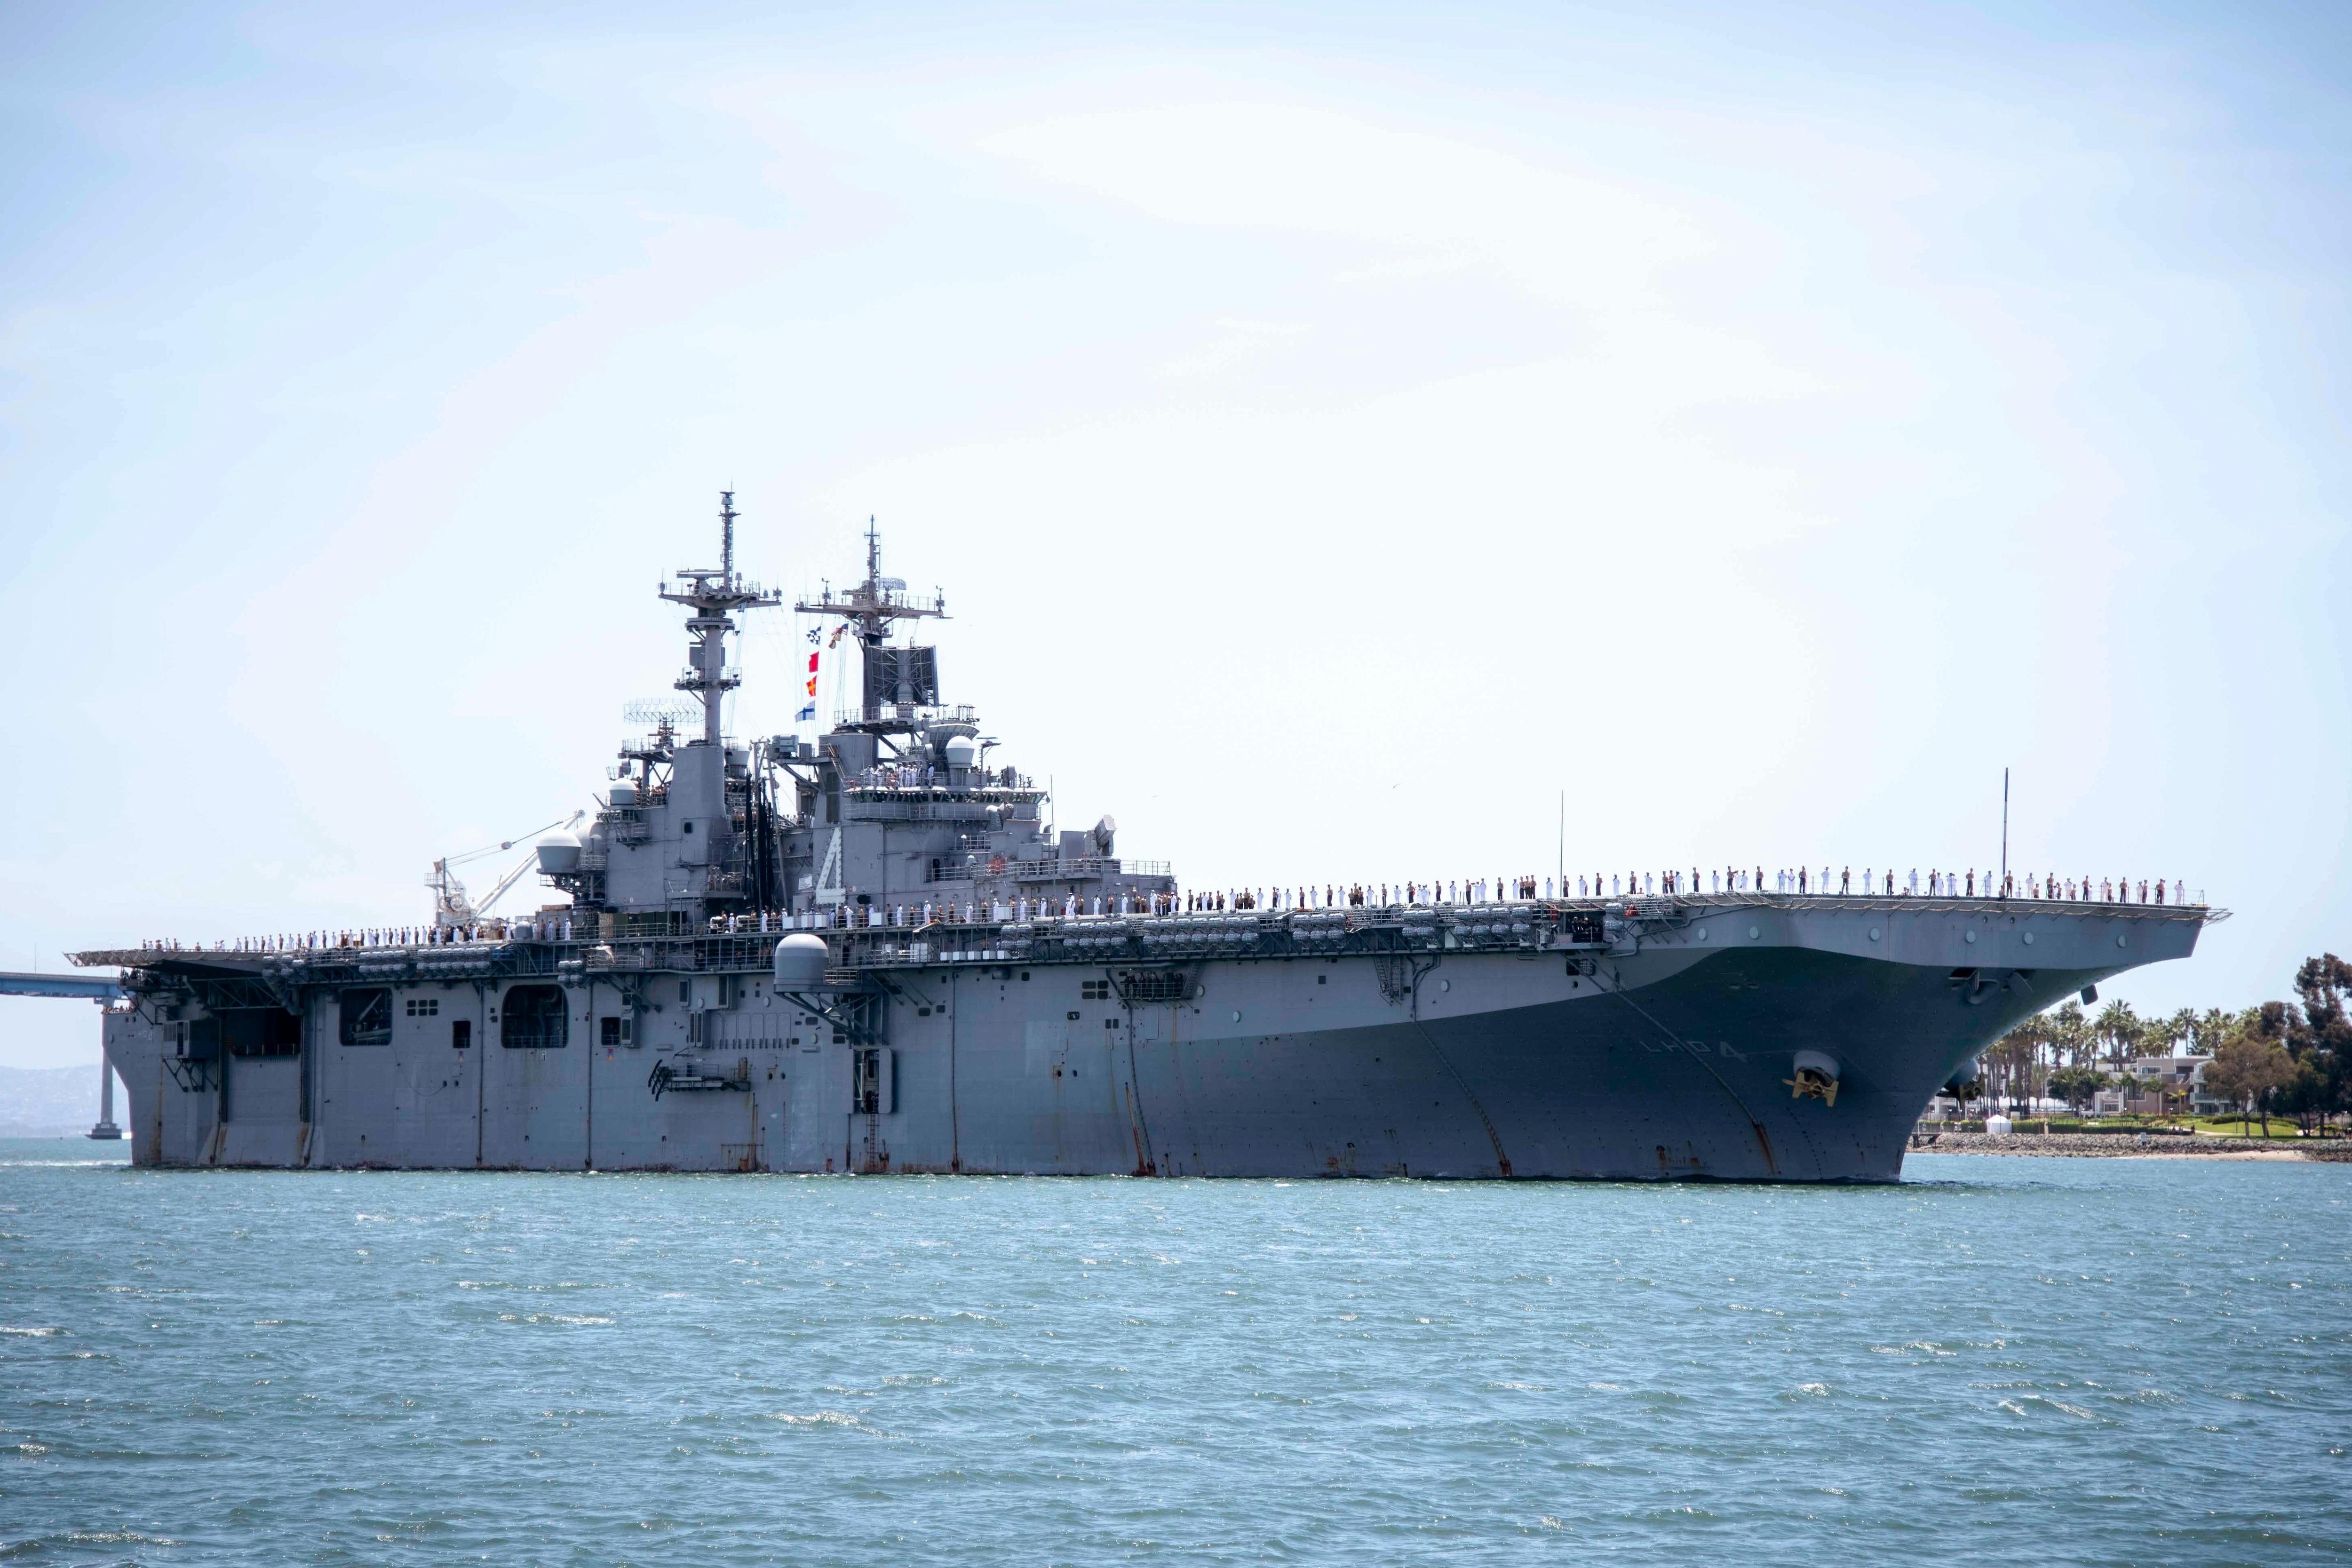 The amphibious assault ship USS Boxer. President Donald Trump says the USS Boxer destroyed an Iranian drone in the Strait of Hormuz.